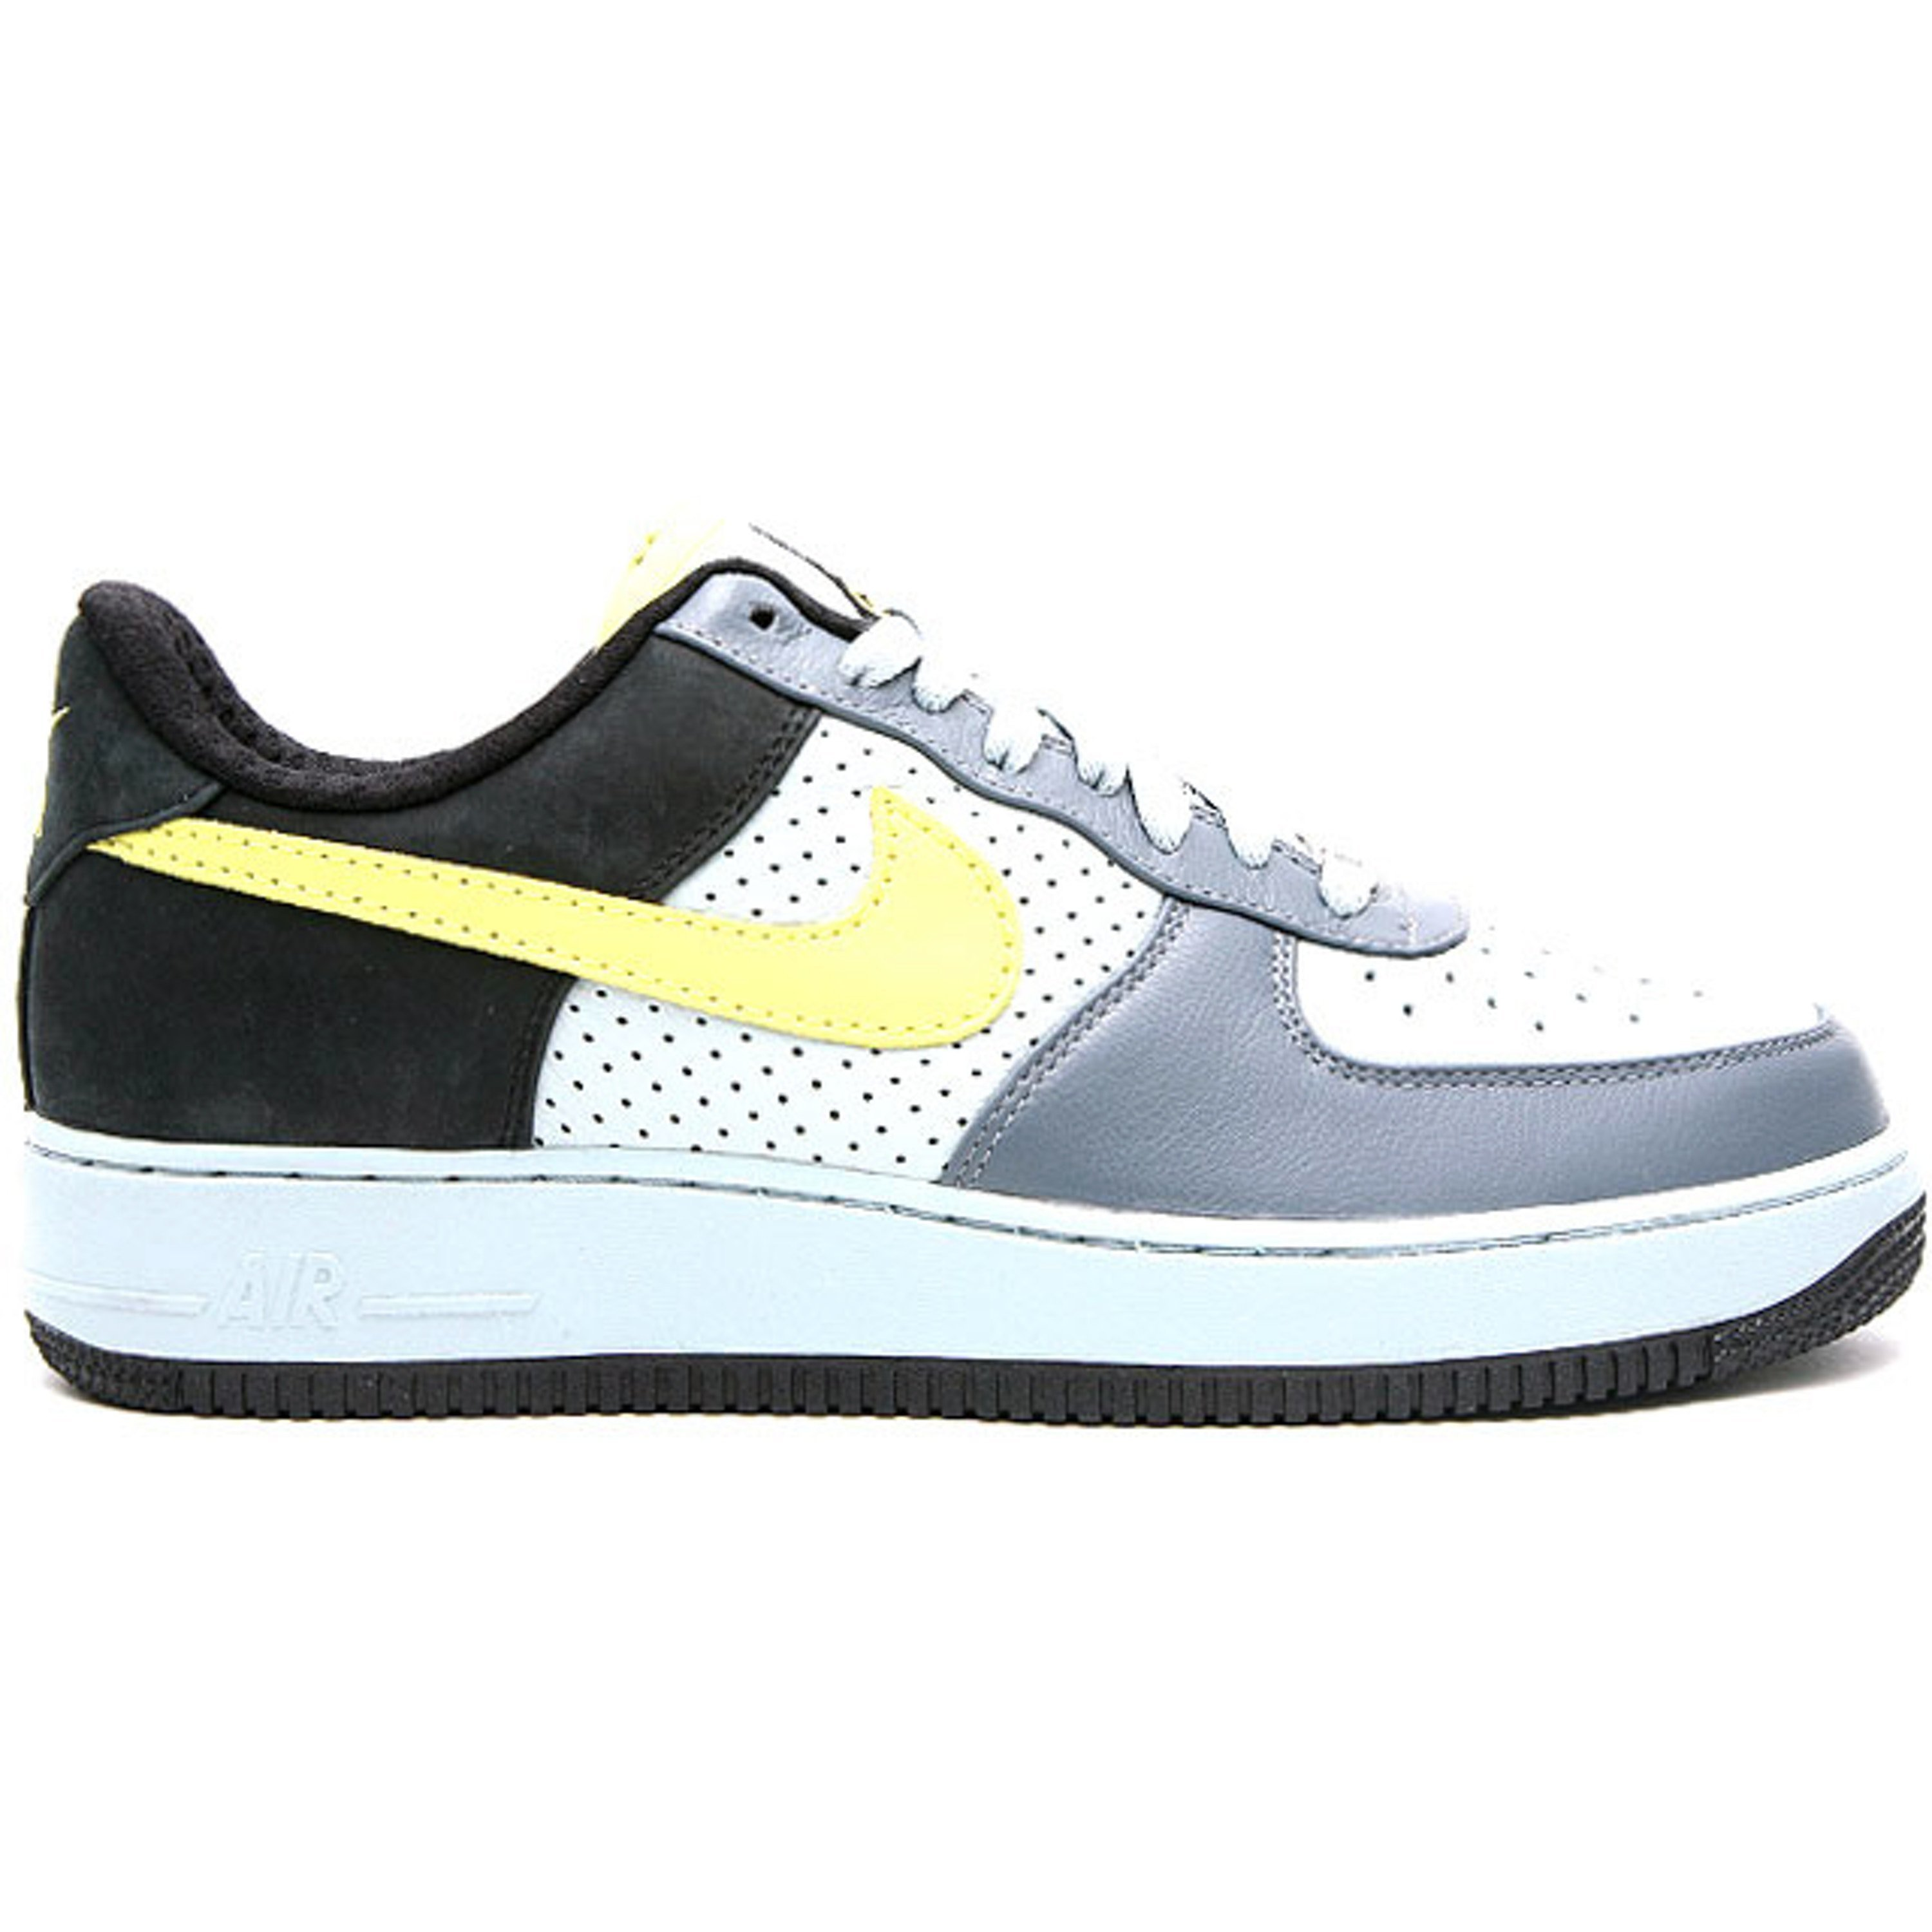 Nike Air Force 1 Low Wildwood (318775-071)